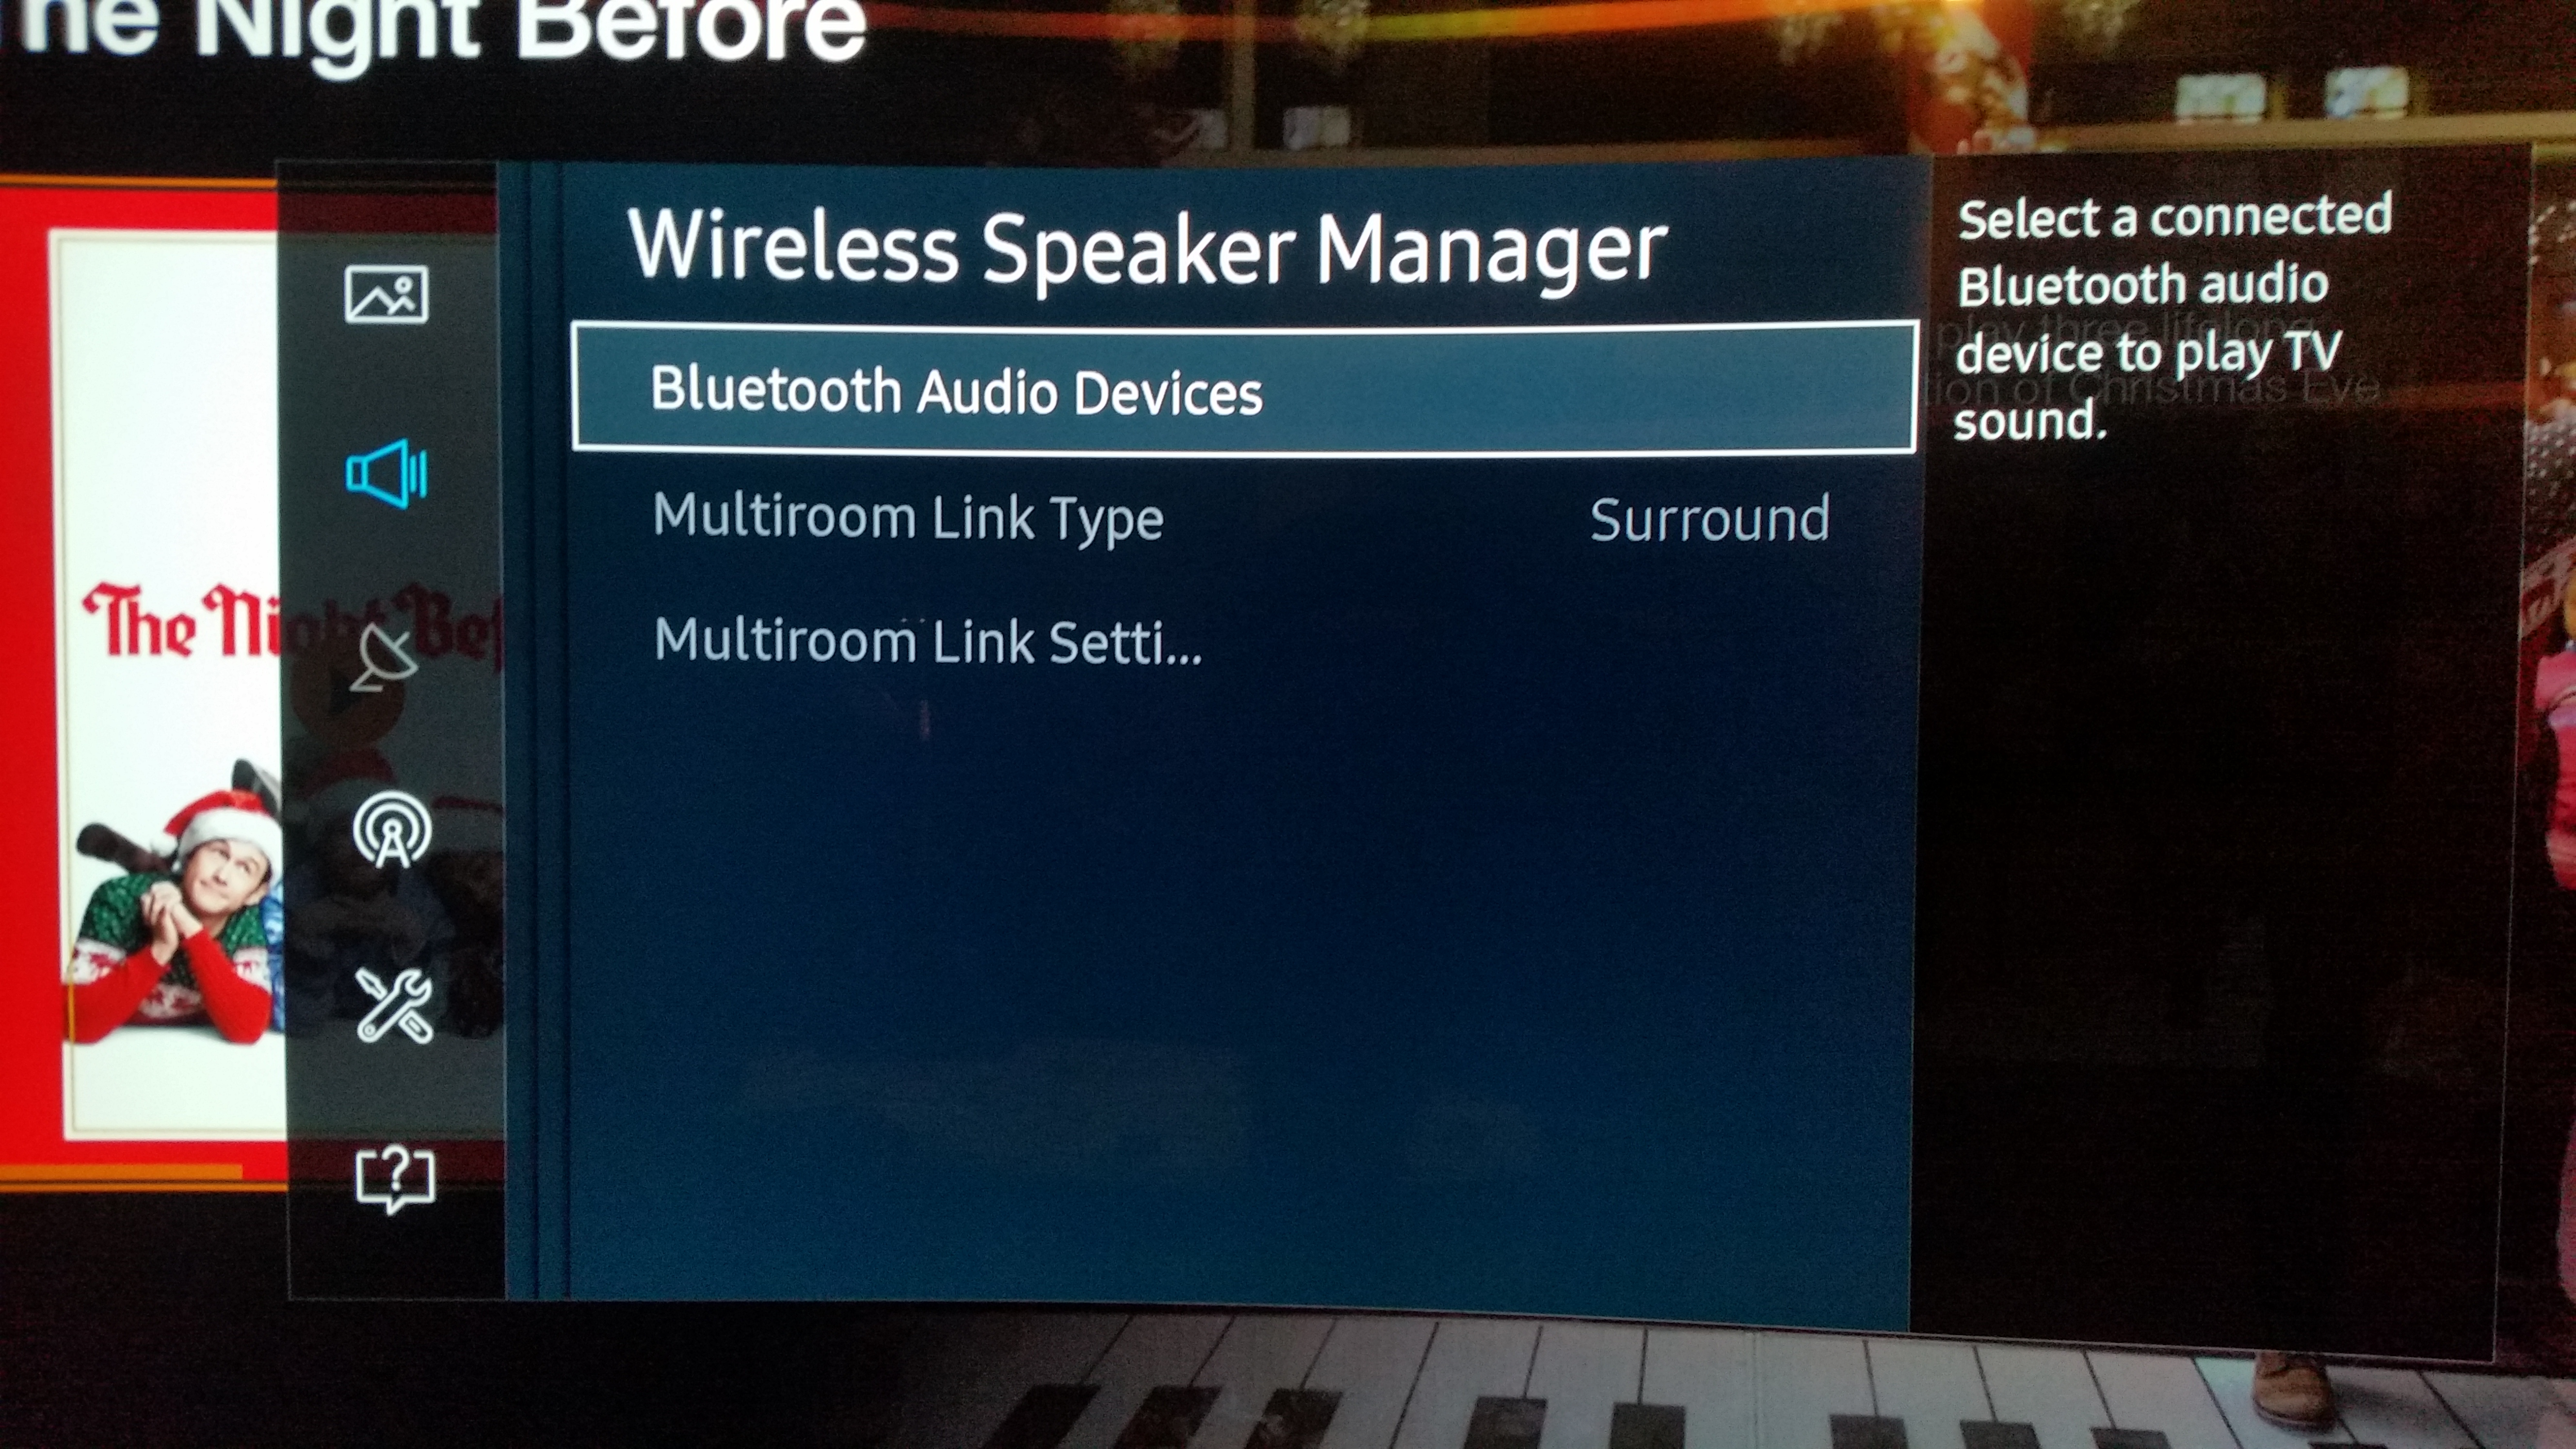 Samsung Tv Wireless Speaker Manager Not Available Wire Center Blue Ox Bx88267 Led Wiring Kit Solved Can T Control Sound Mode On Shud When S Rh Us Community Com Surround System